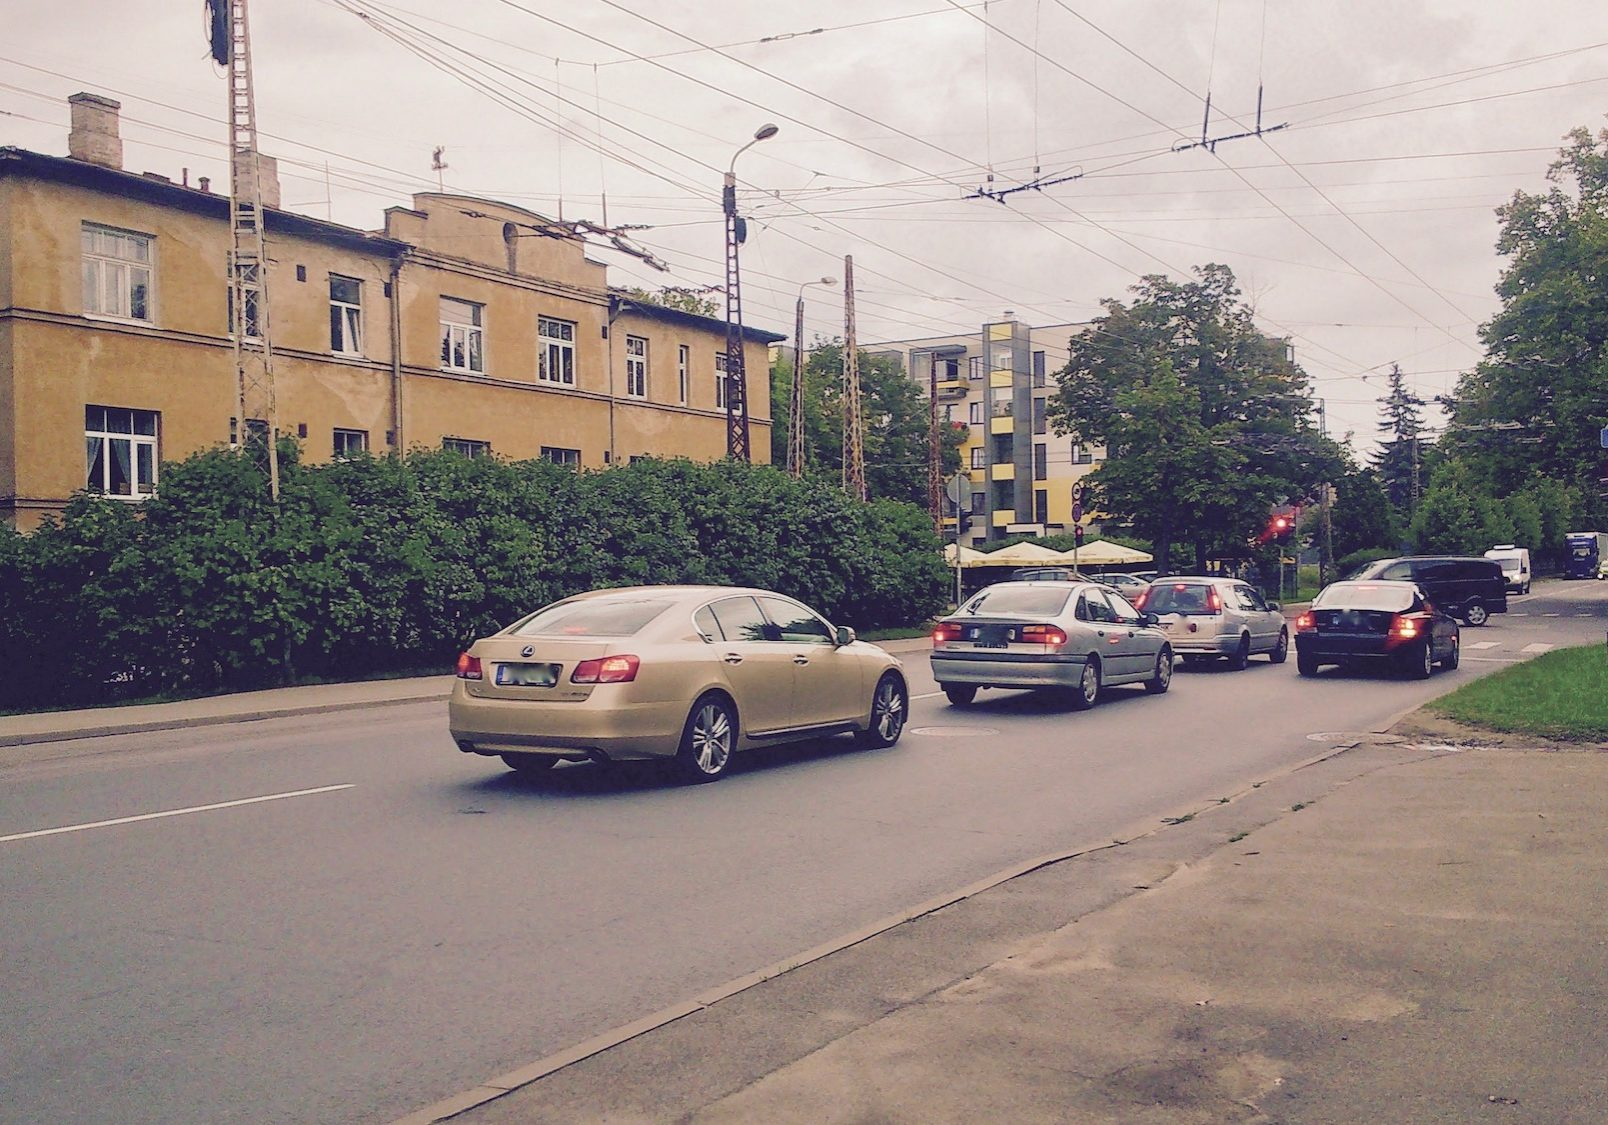 Biķernieku Street is a great location